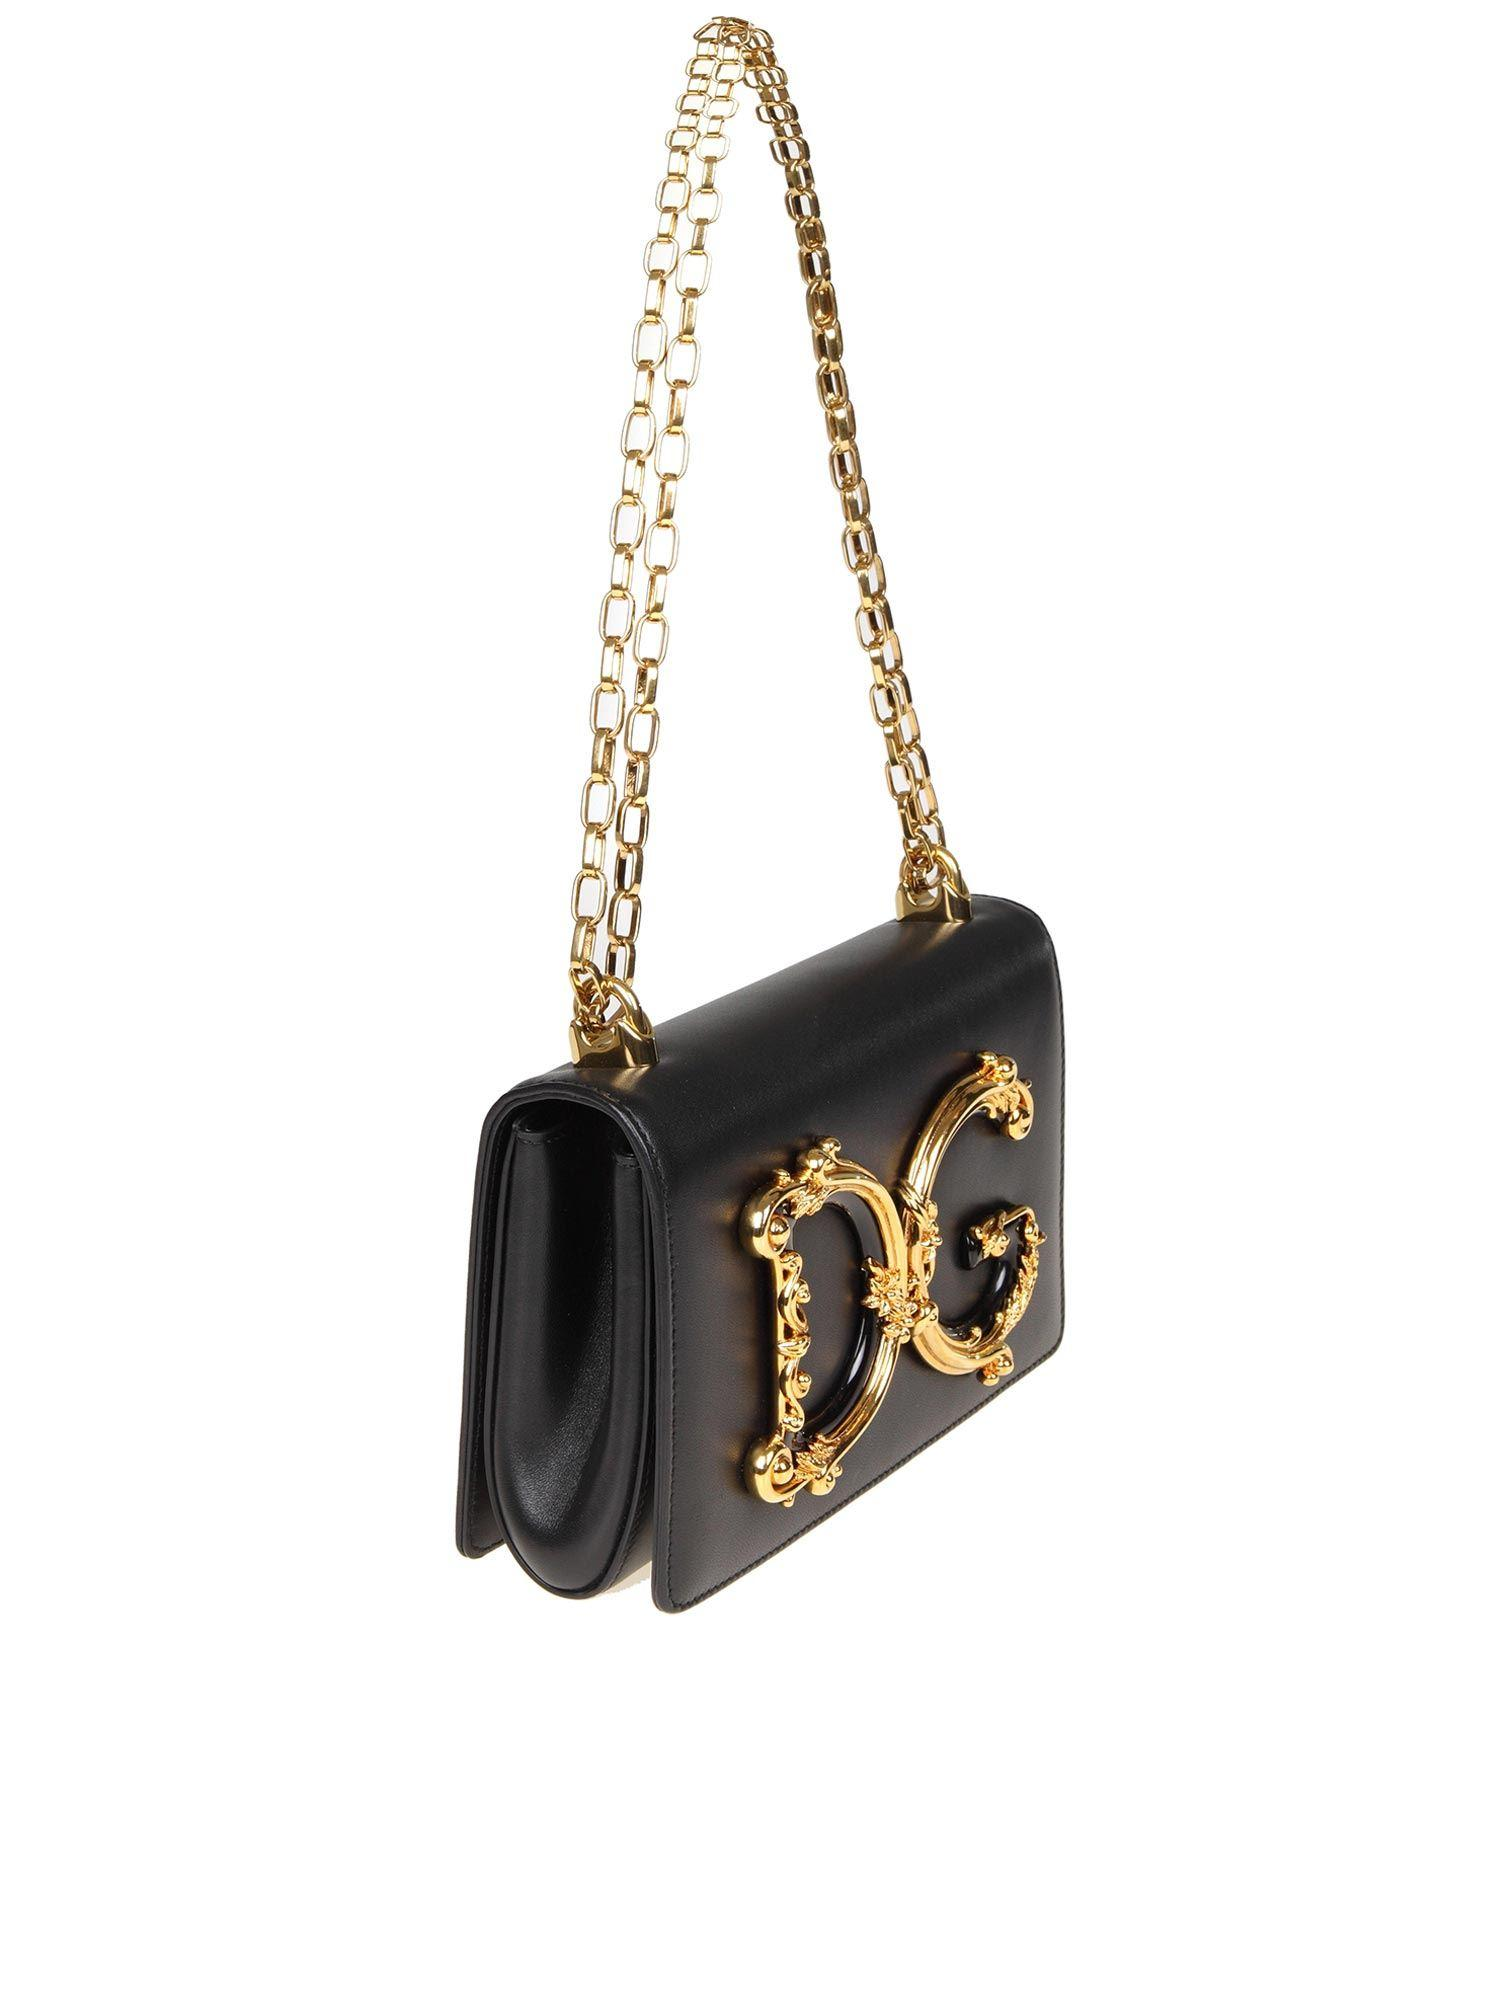 efeea730c0e6 Lyst - Dolce   Gabbana Black D g Bag With Baroque Logo in Black